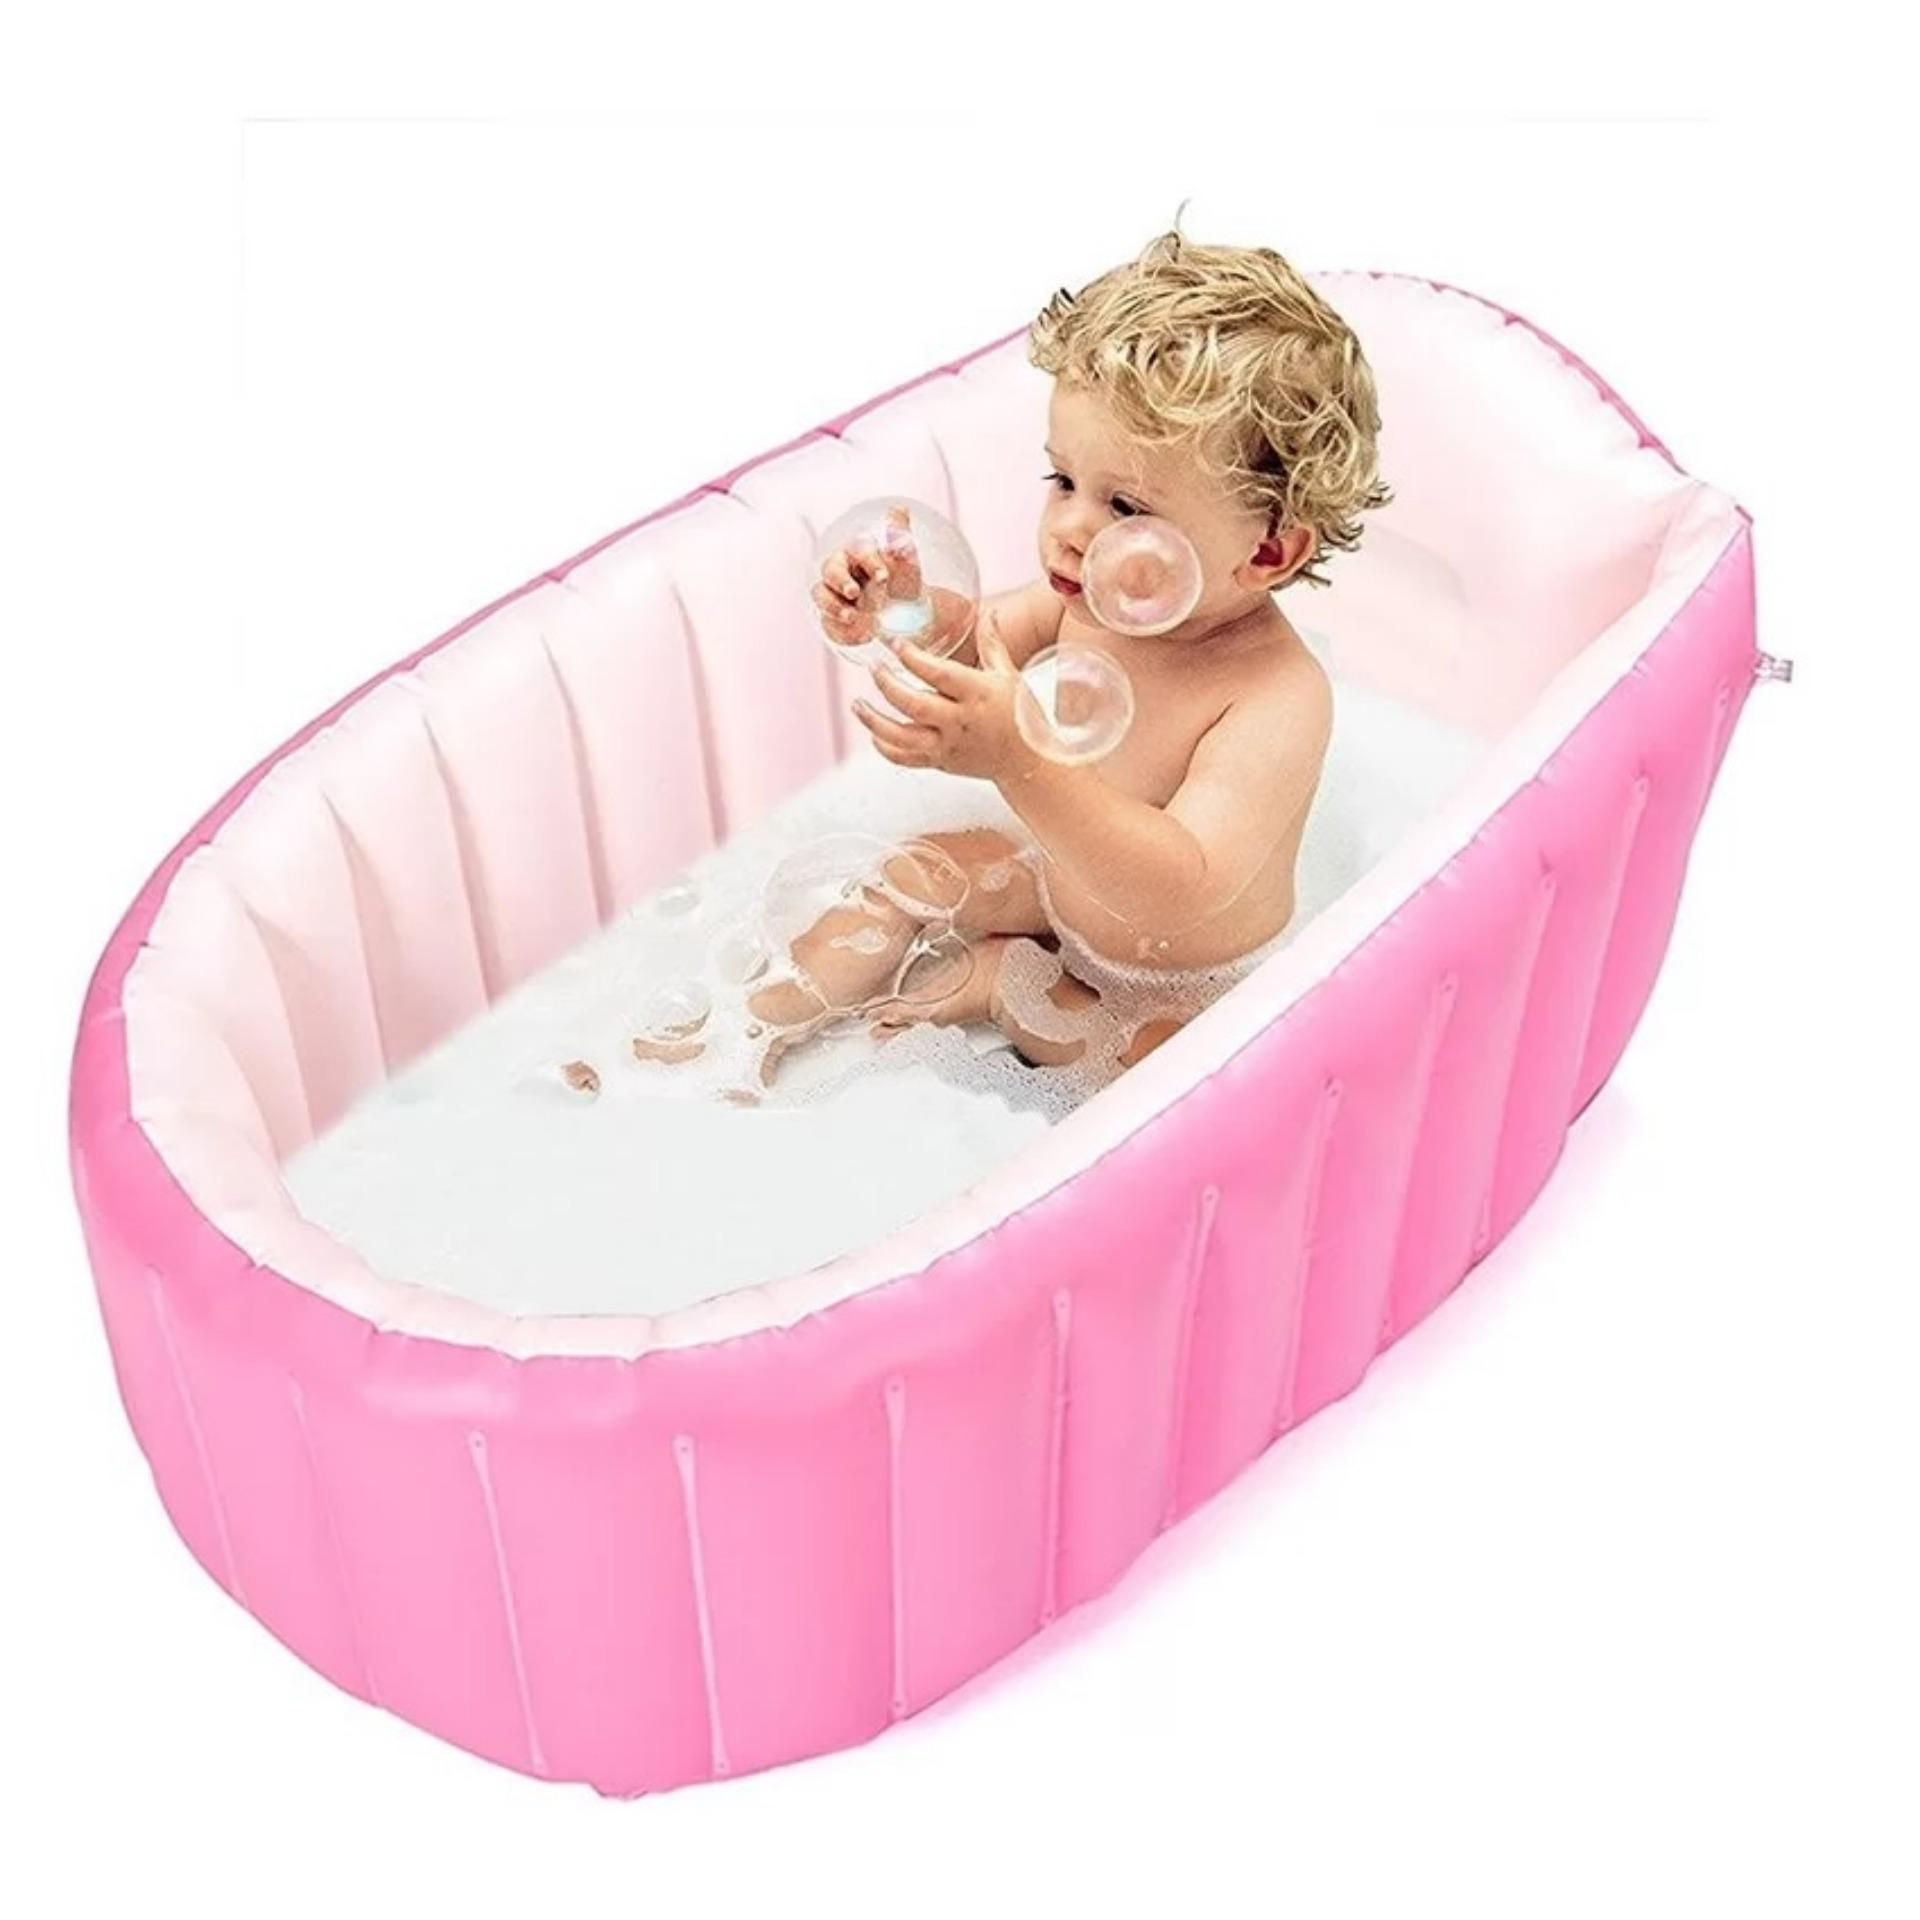 Target Baby Bathtub - Bathtub Ideas